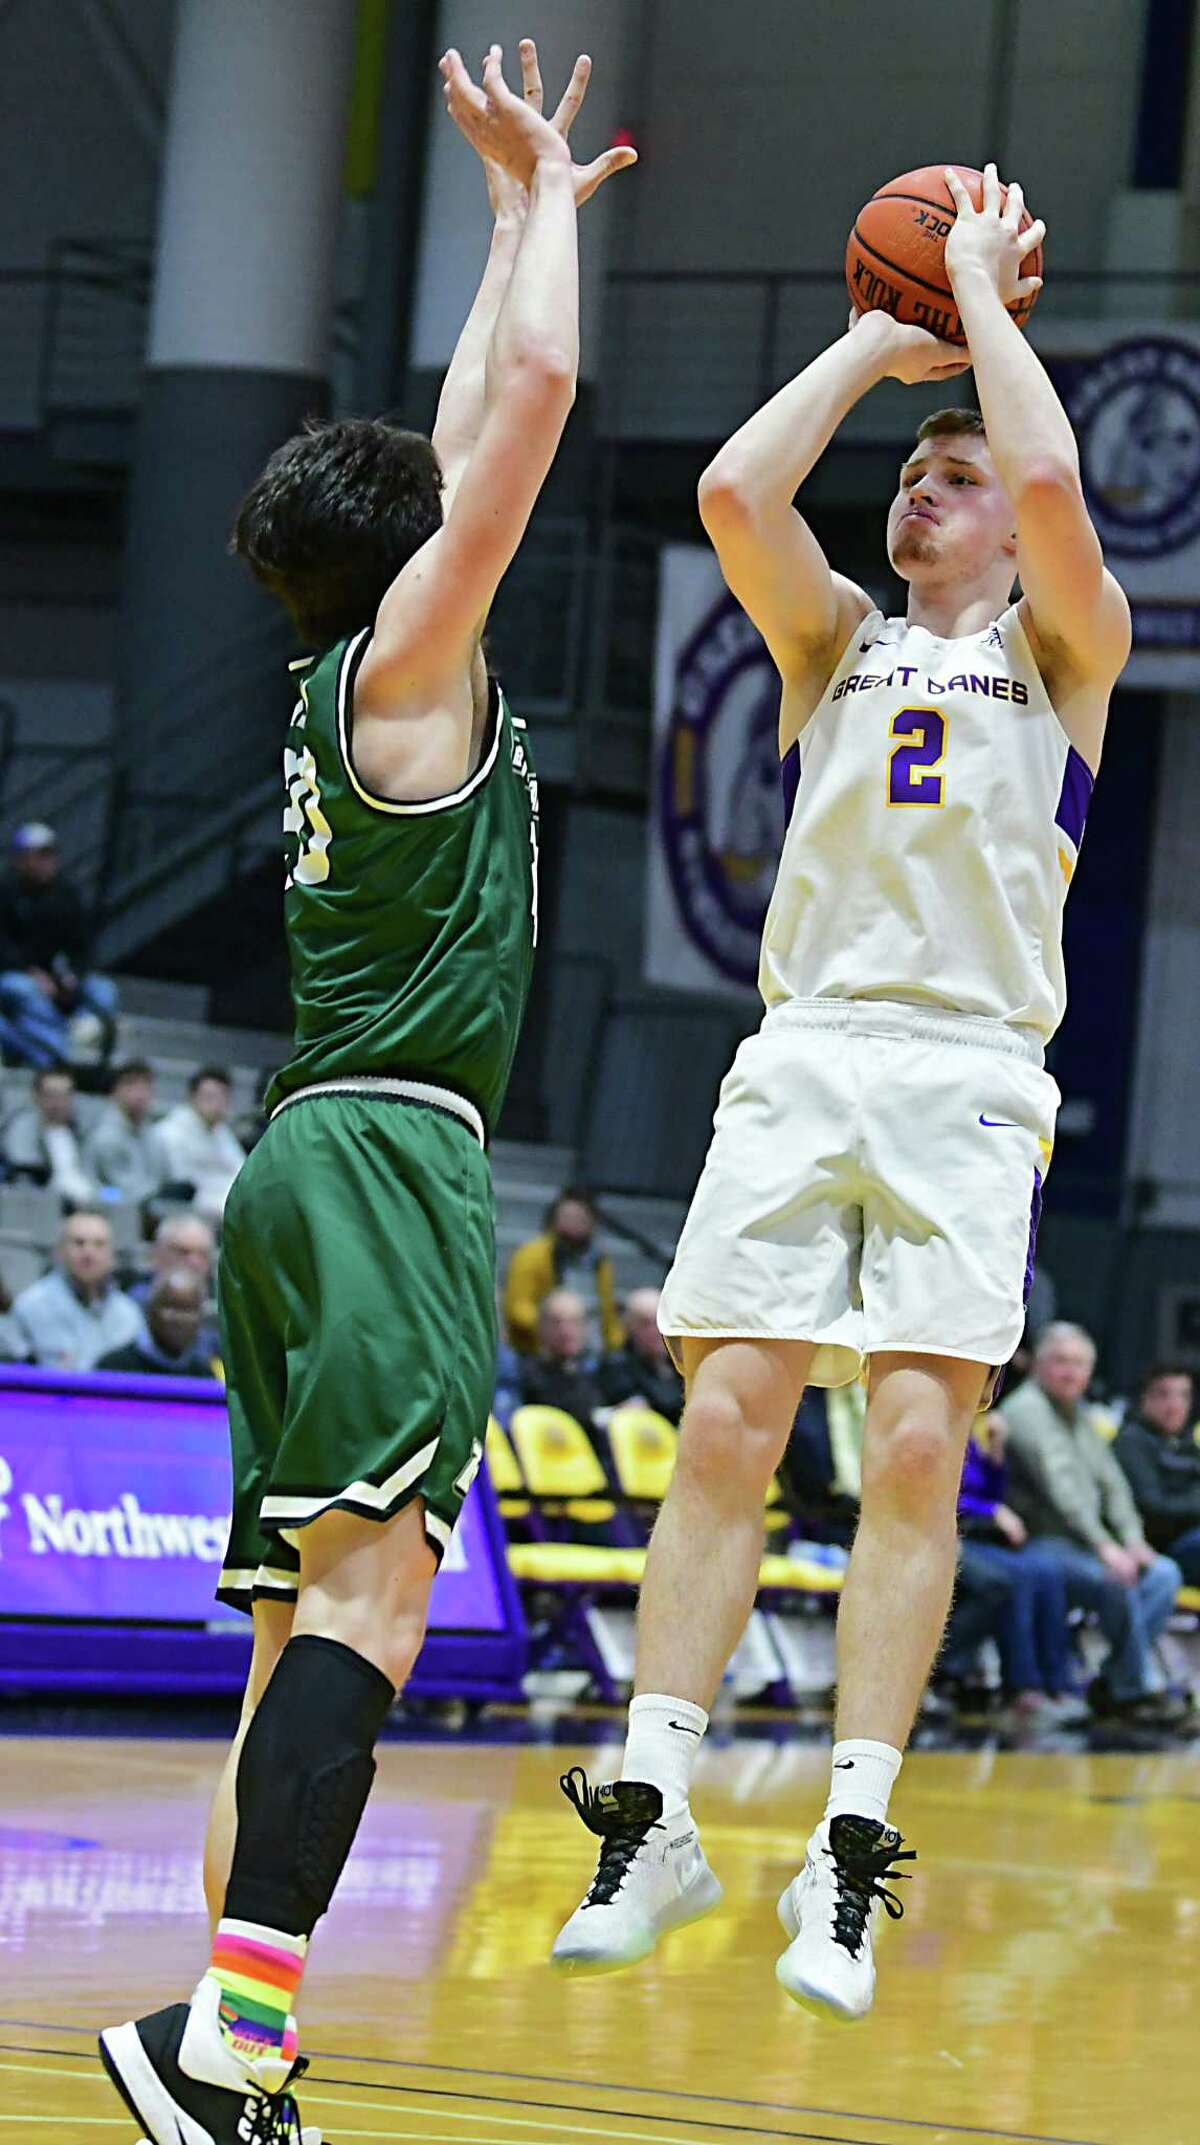 University at Albany's Trey Hutcheson puts up a shot against Binghamton's George Tinsley during a game at the SEFCU Arena on Wednesday, Feb. 5, 2020 in Albany, N.Y. (Lori Van Buren/Times Union)